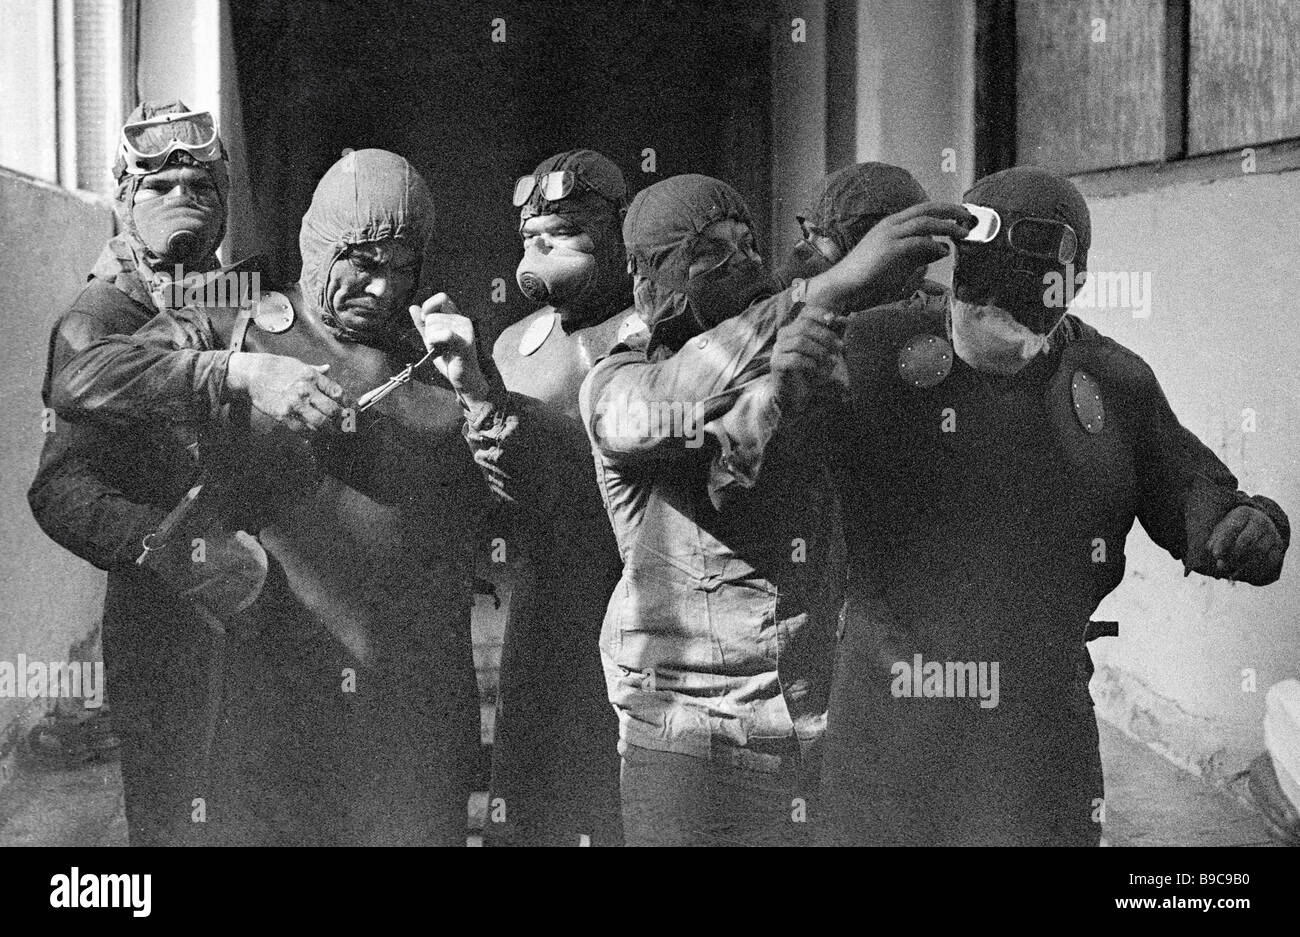 A group of liquidators ready to climb the top of the Chernobyl nuclear reactor after the disaster - Stock Image